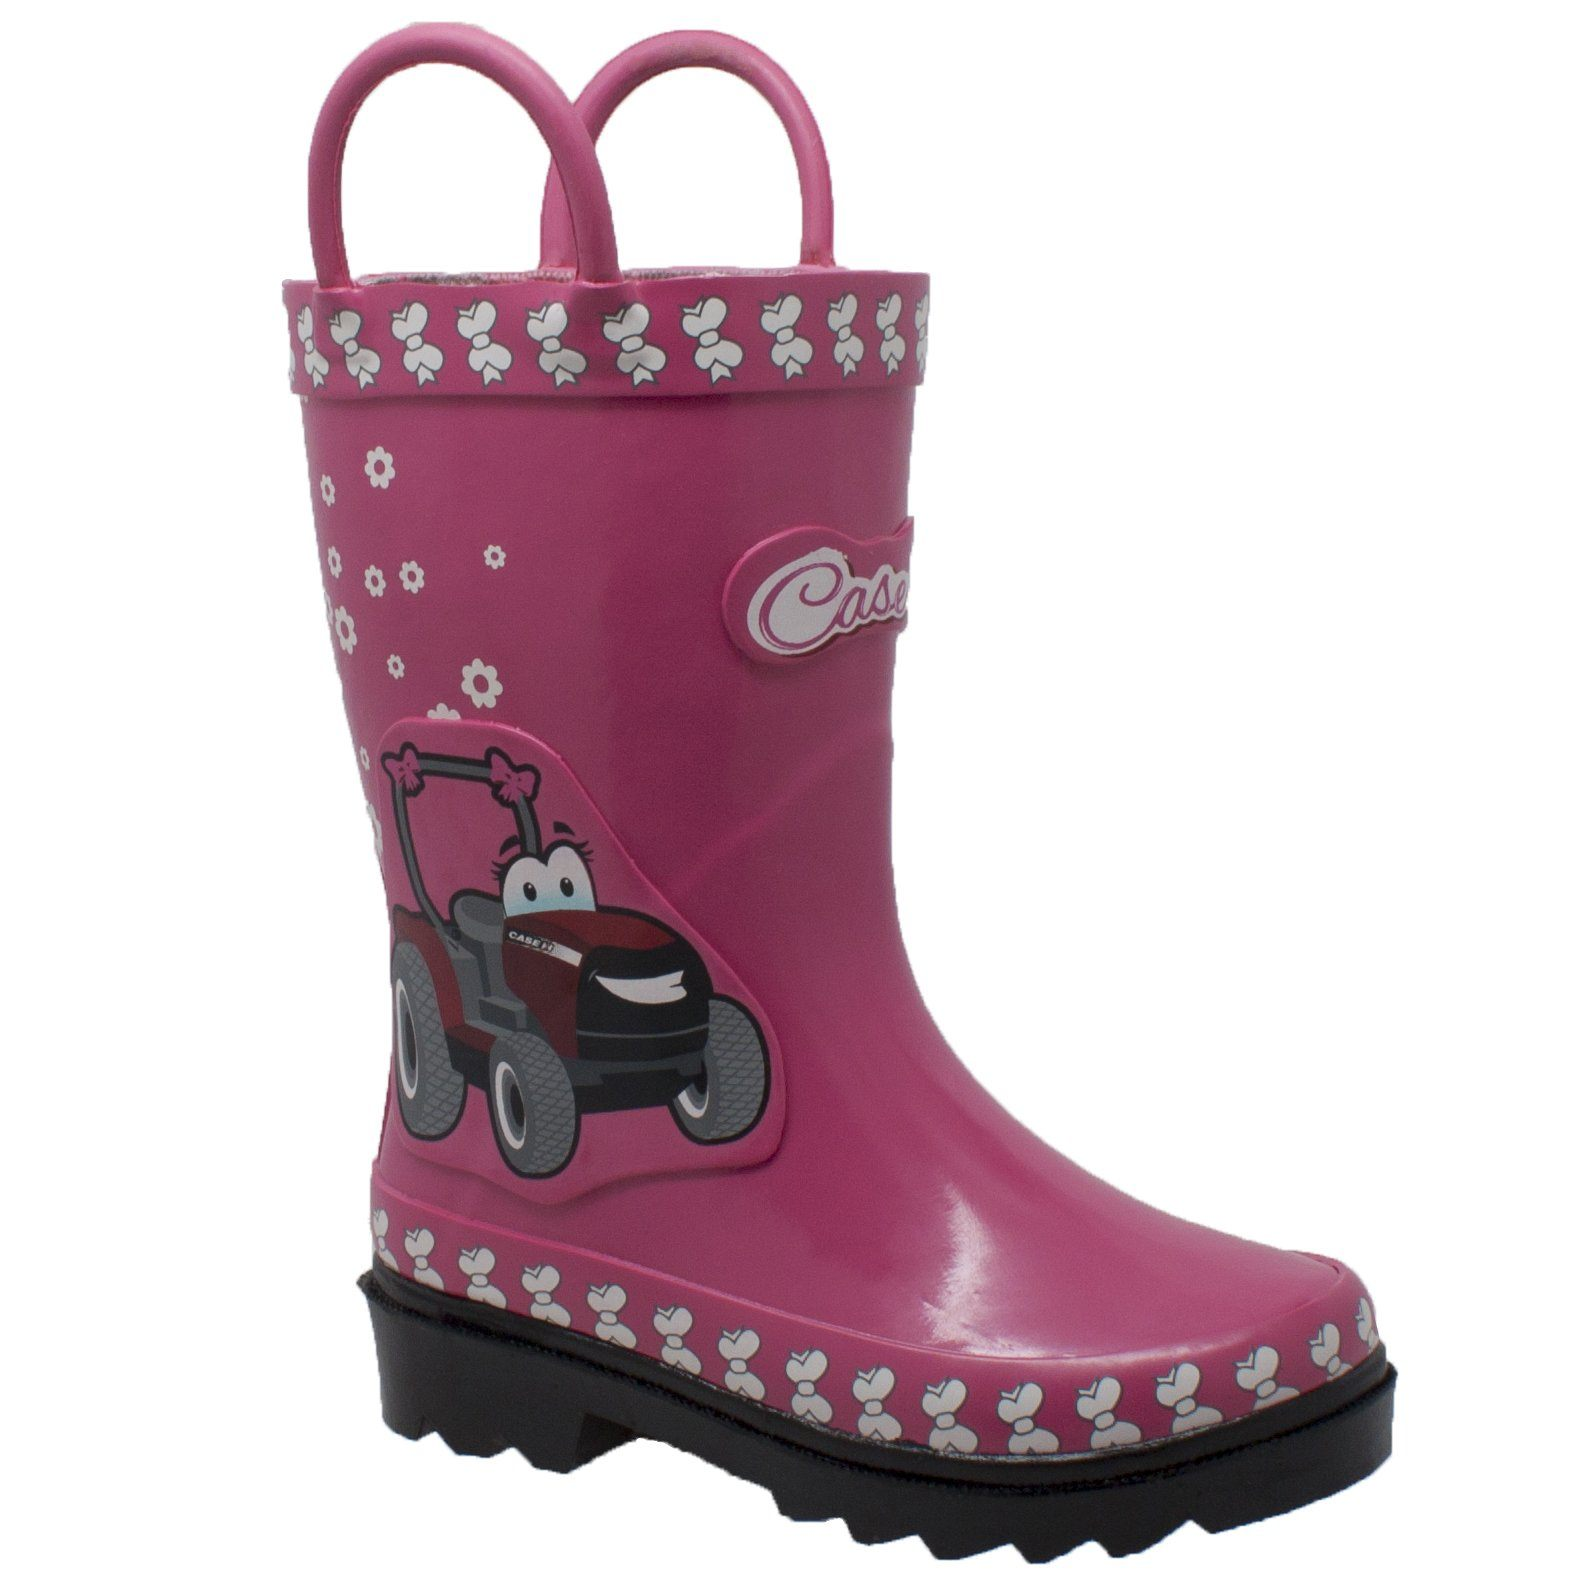 Children's Boots - Toddler's 3D Tractor Pink Rubber Boots